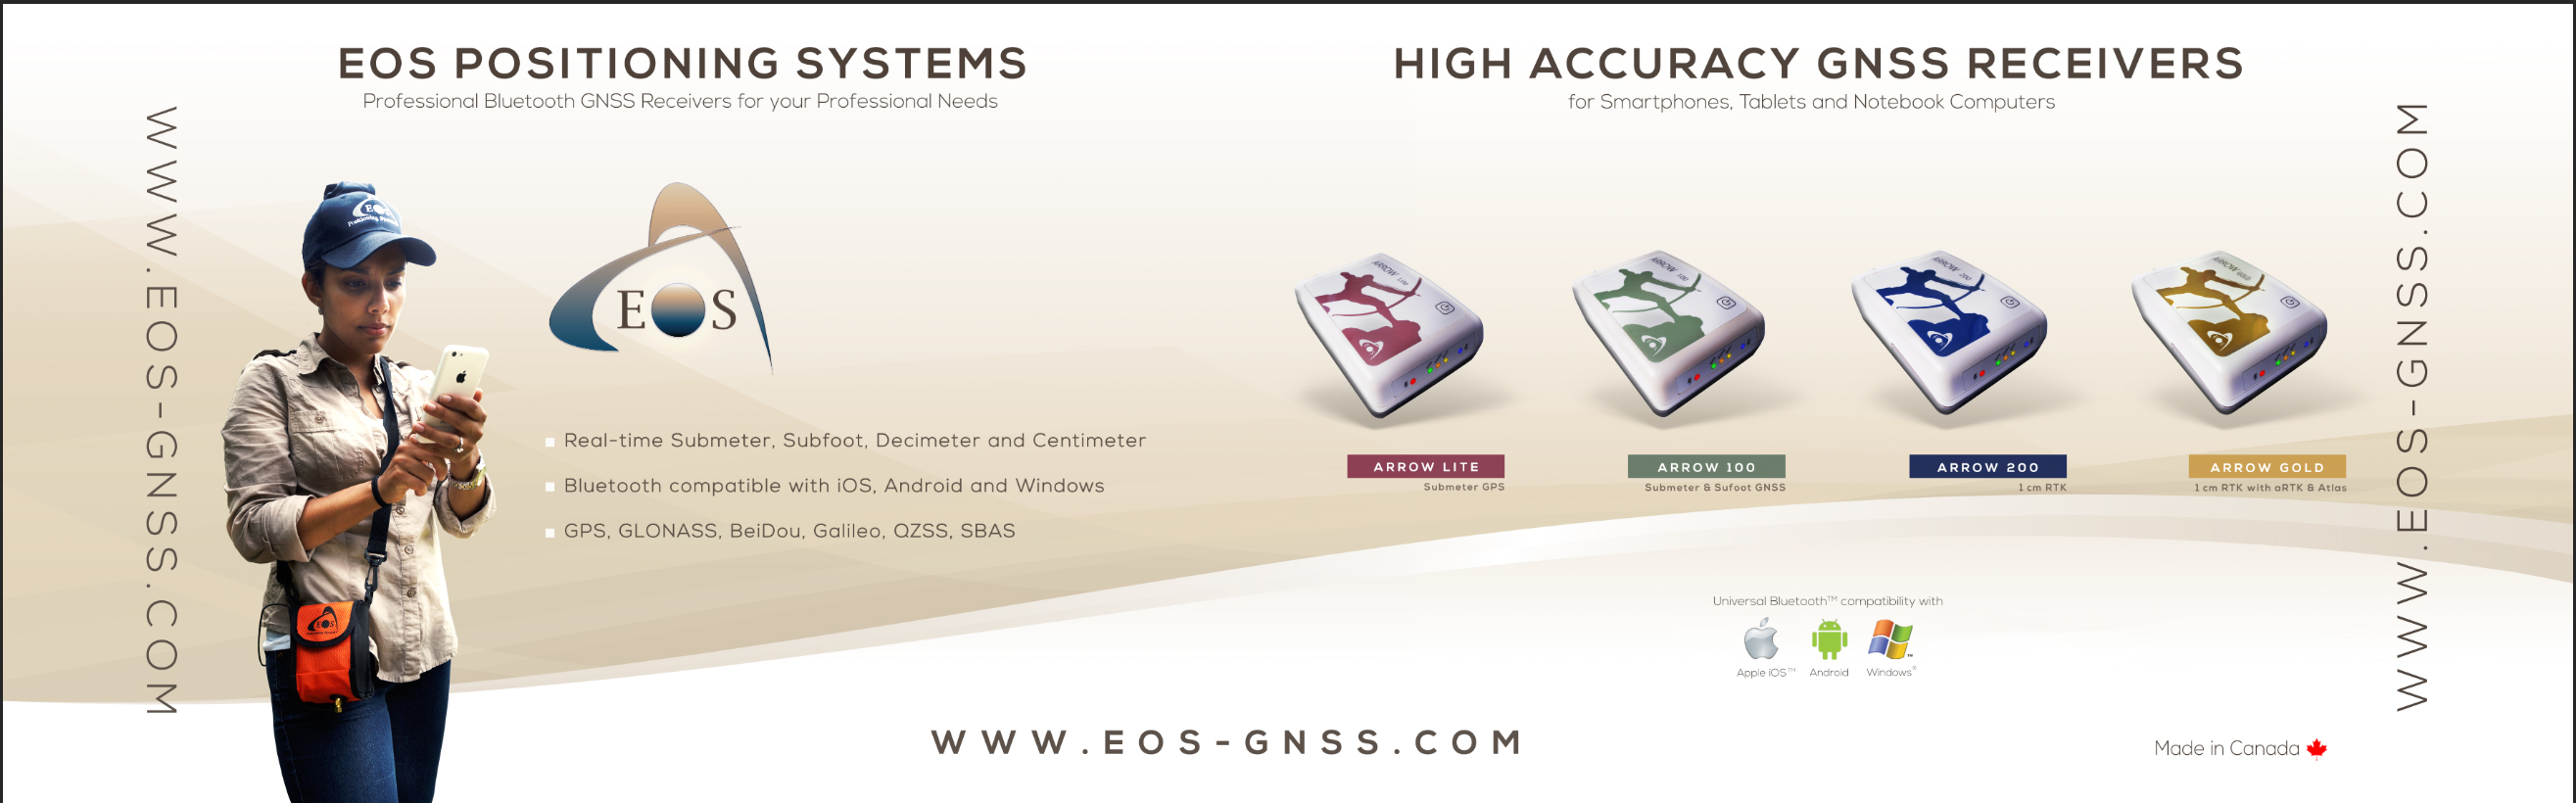 kiosque eos positioning systems esri 2016